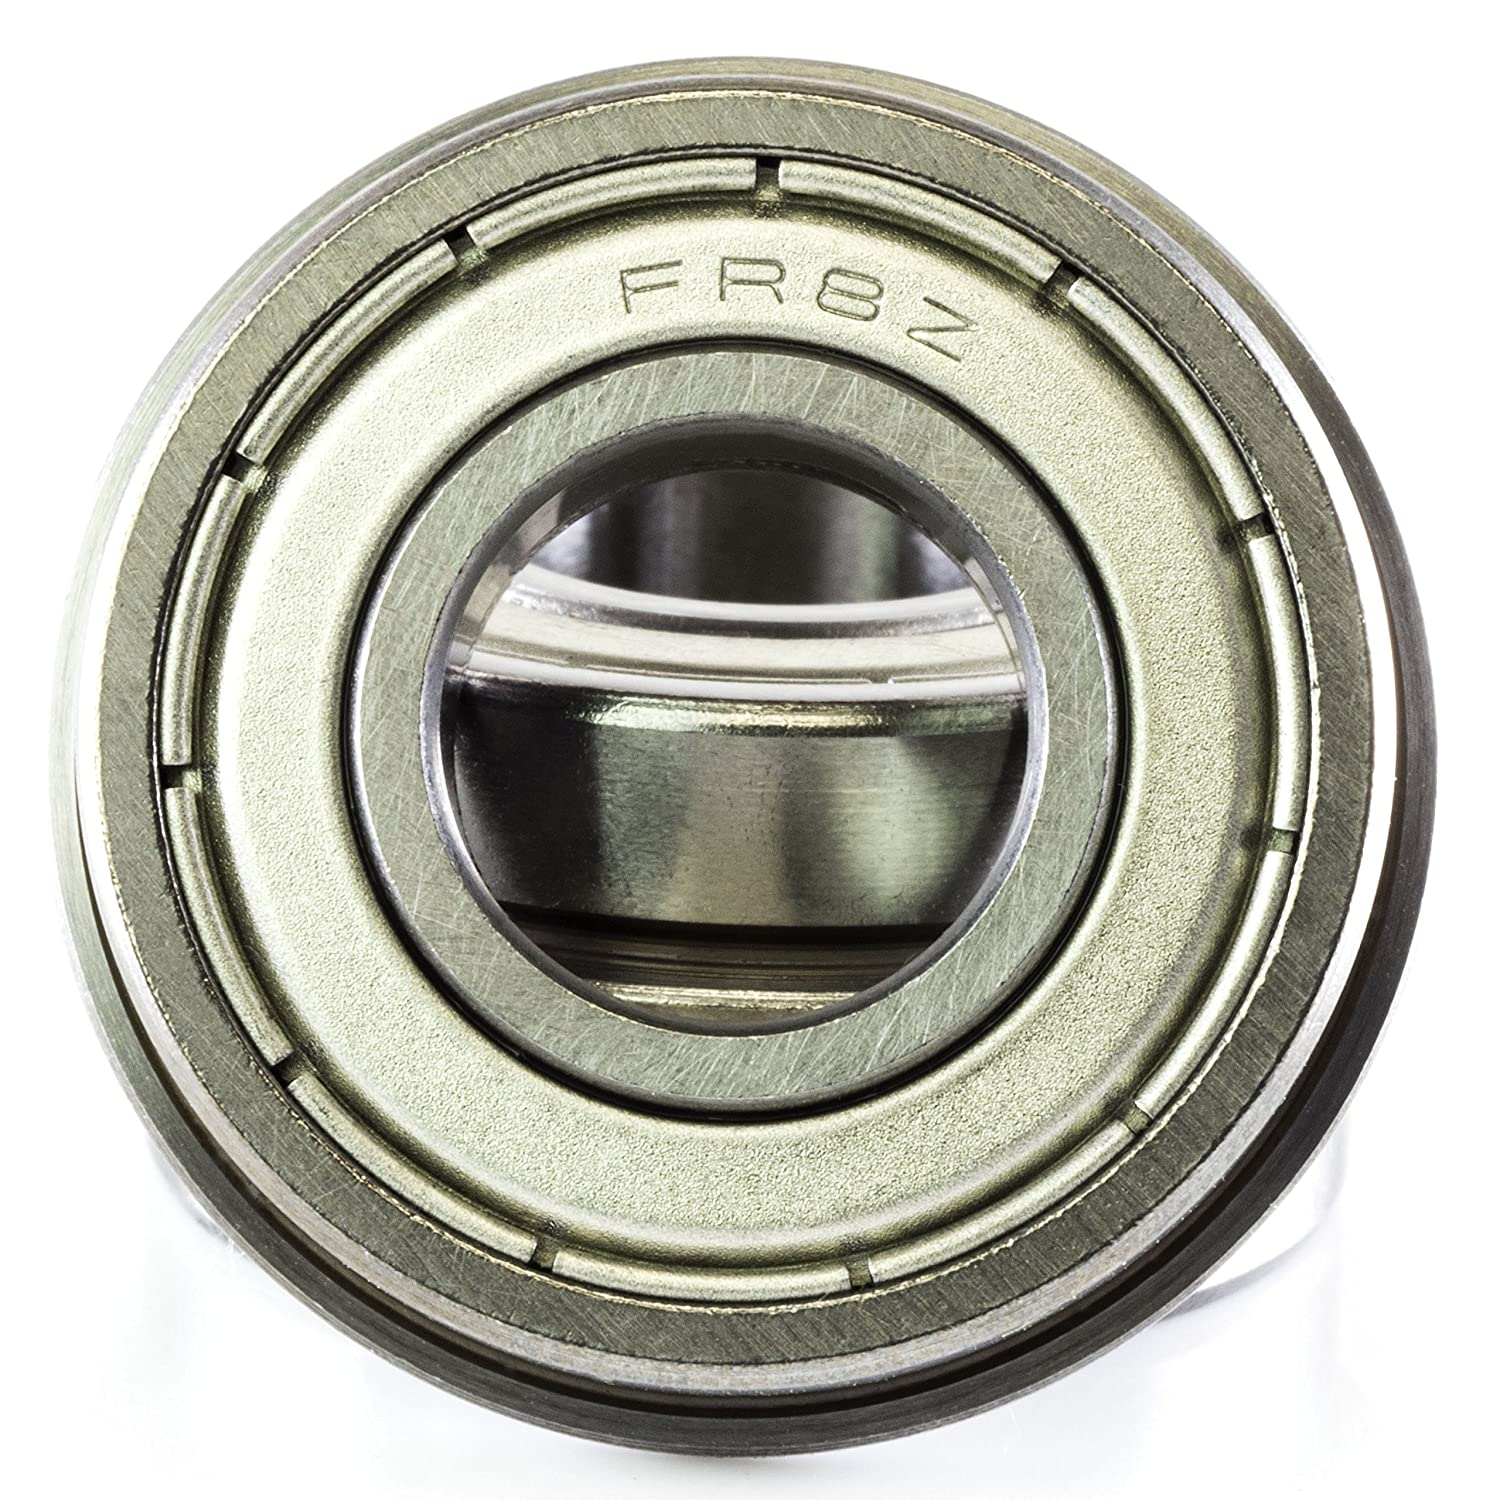 R8ZZ R8 ZZ Flanged 1/2 x 1-1/8 x 5/16 Double Sealed Precision Ball Bearing CNC Slide Bushing